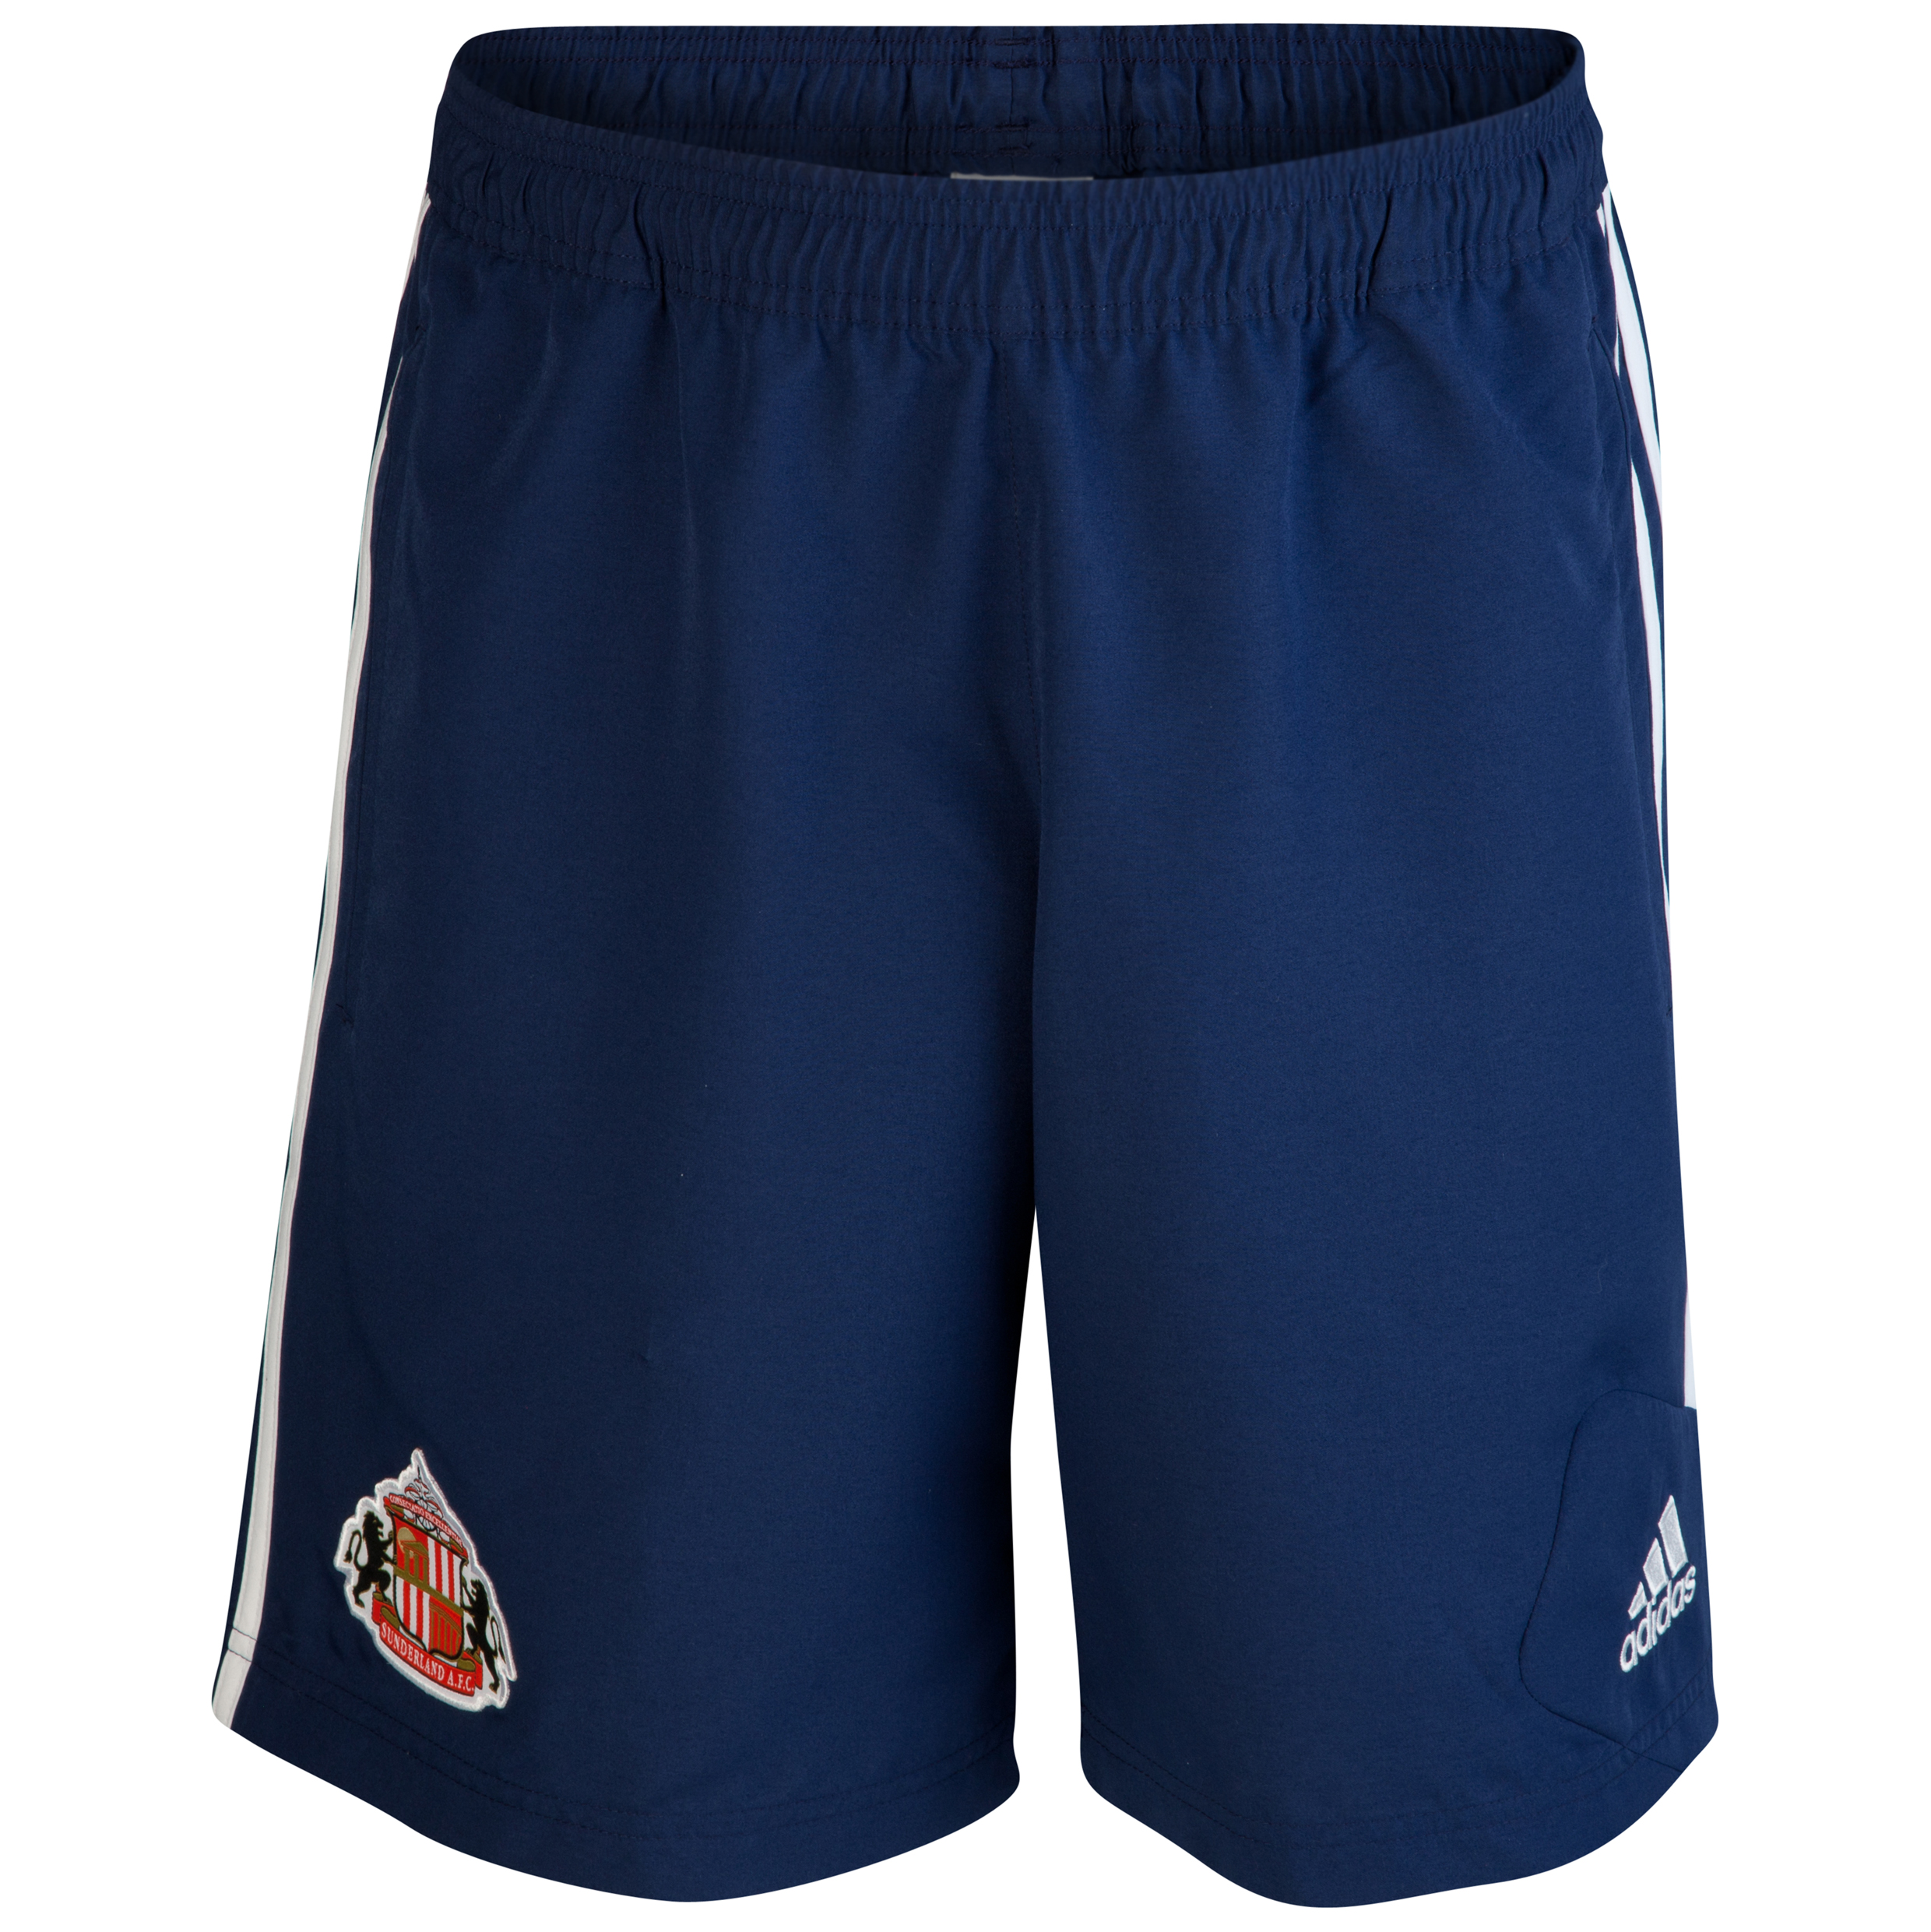 Sunderland Condivo Woven Short - New Navy/White - Junior